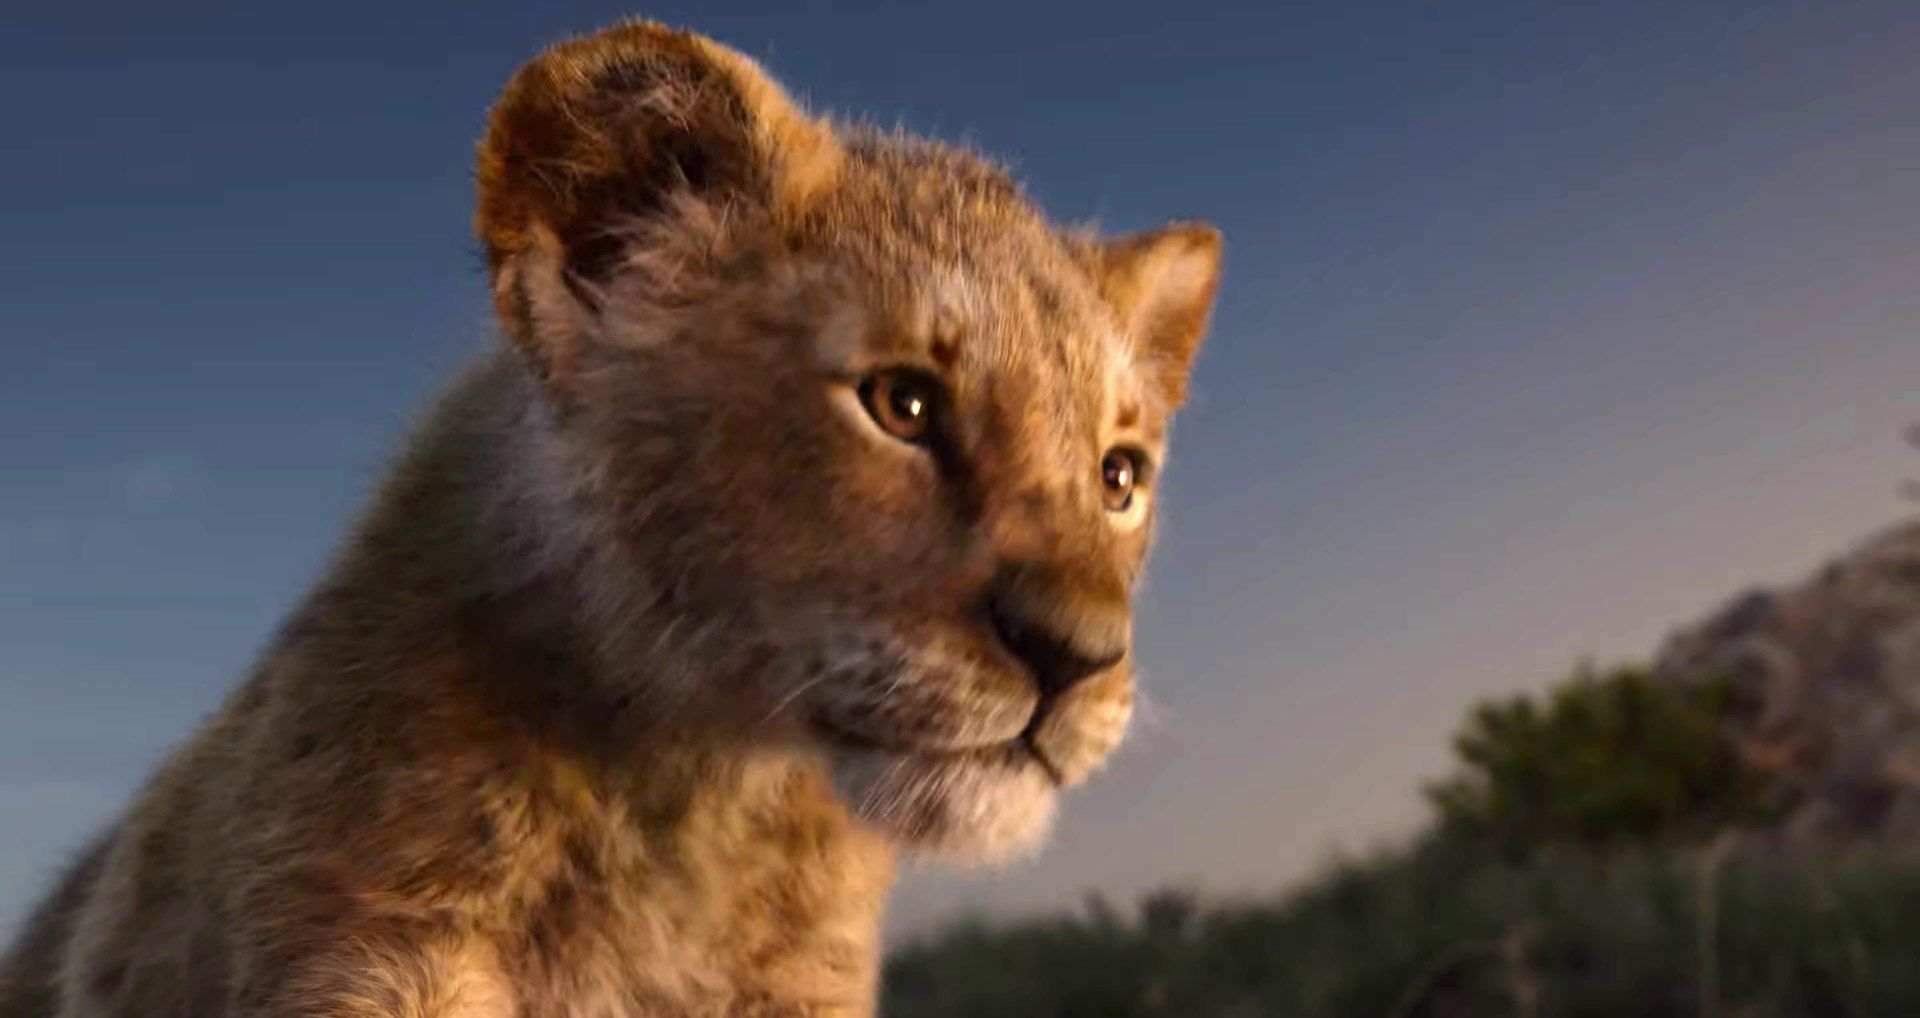 The Lion King soundtrack confirms the classic songs coming back for